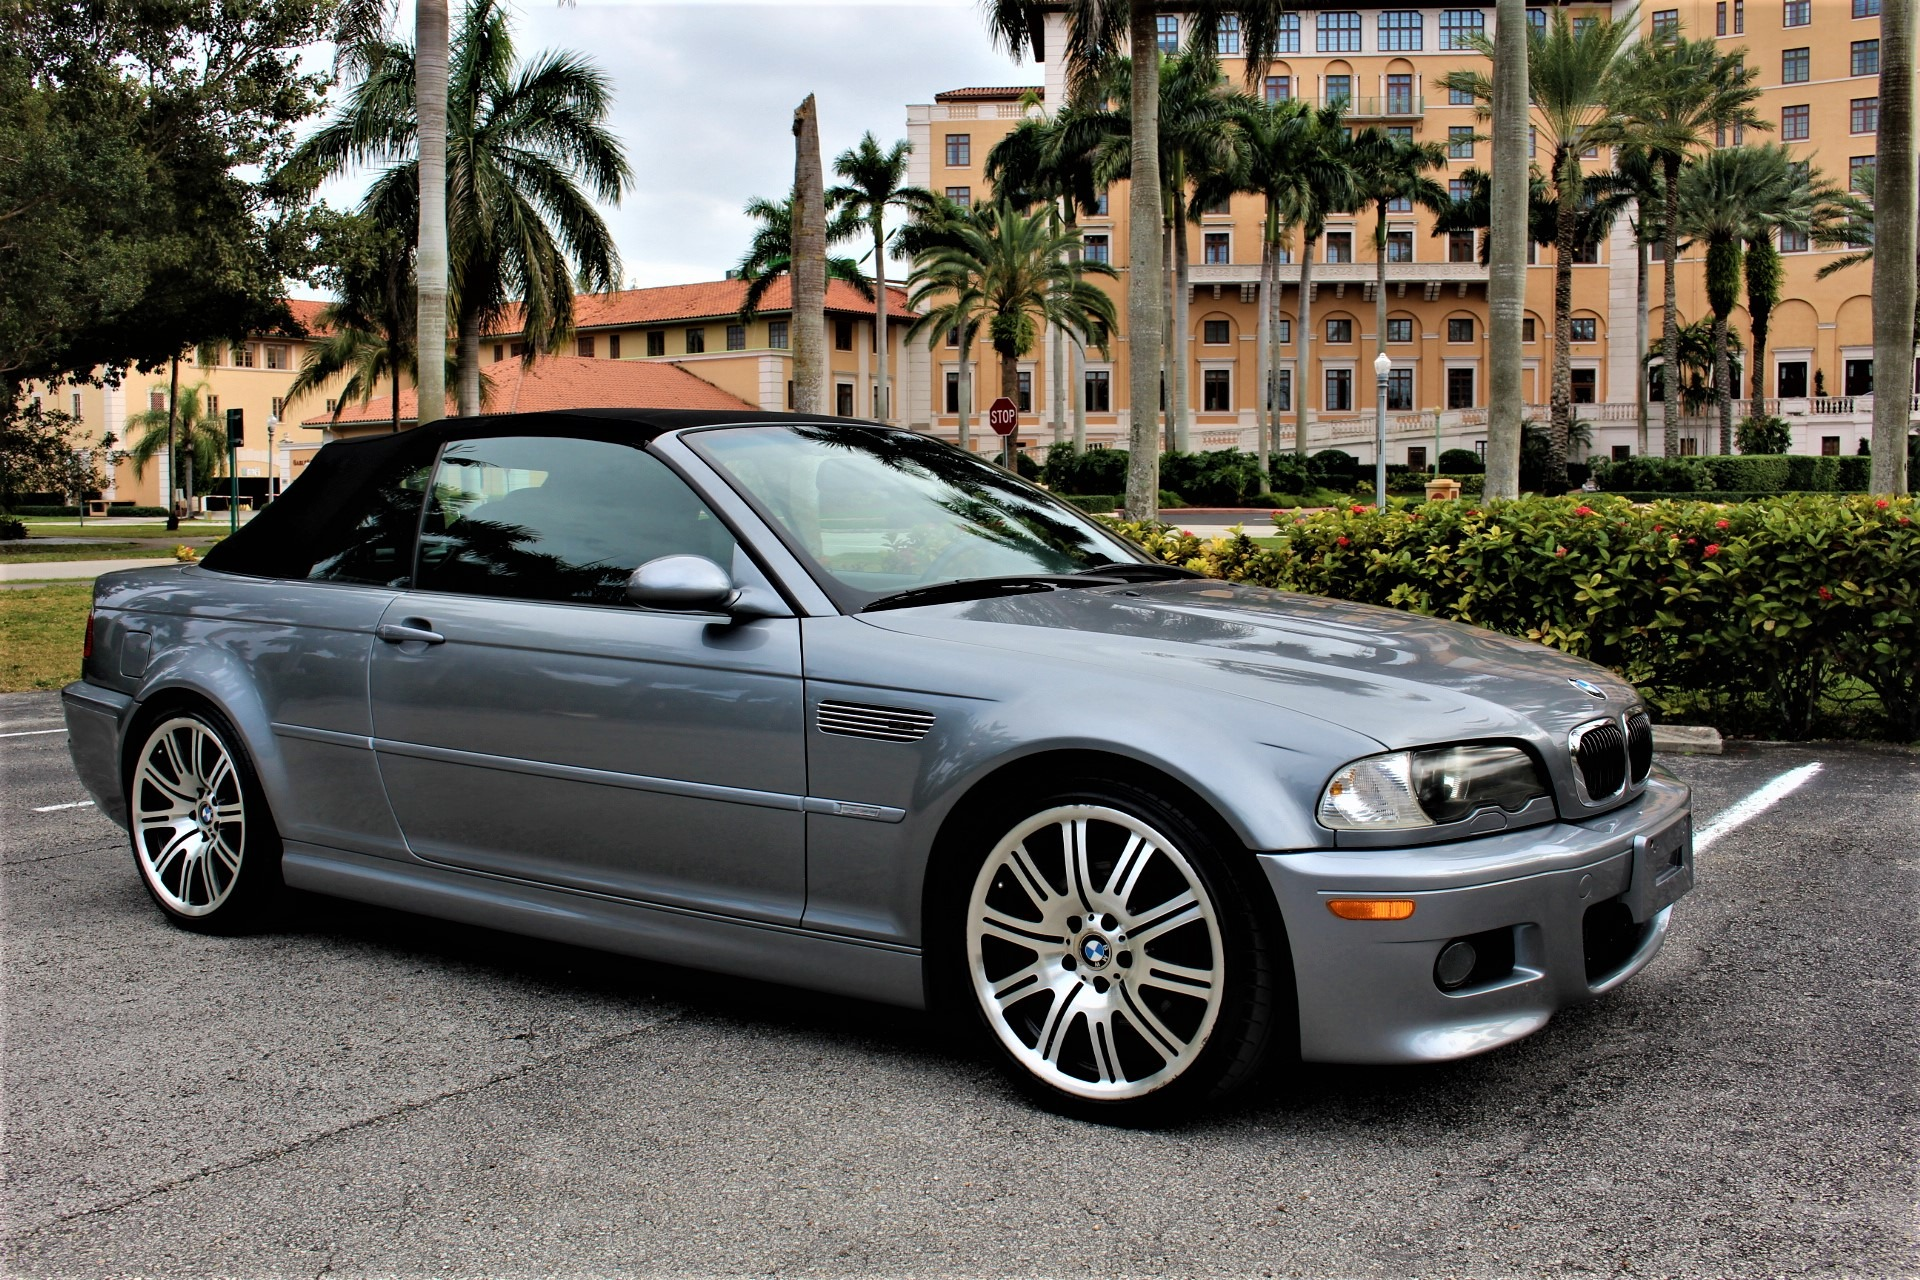 Used 2004 BMW M3 for sale Sold at The Gables Sports Cars in Miami FL 33146 3